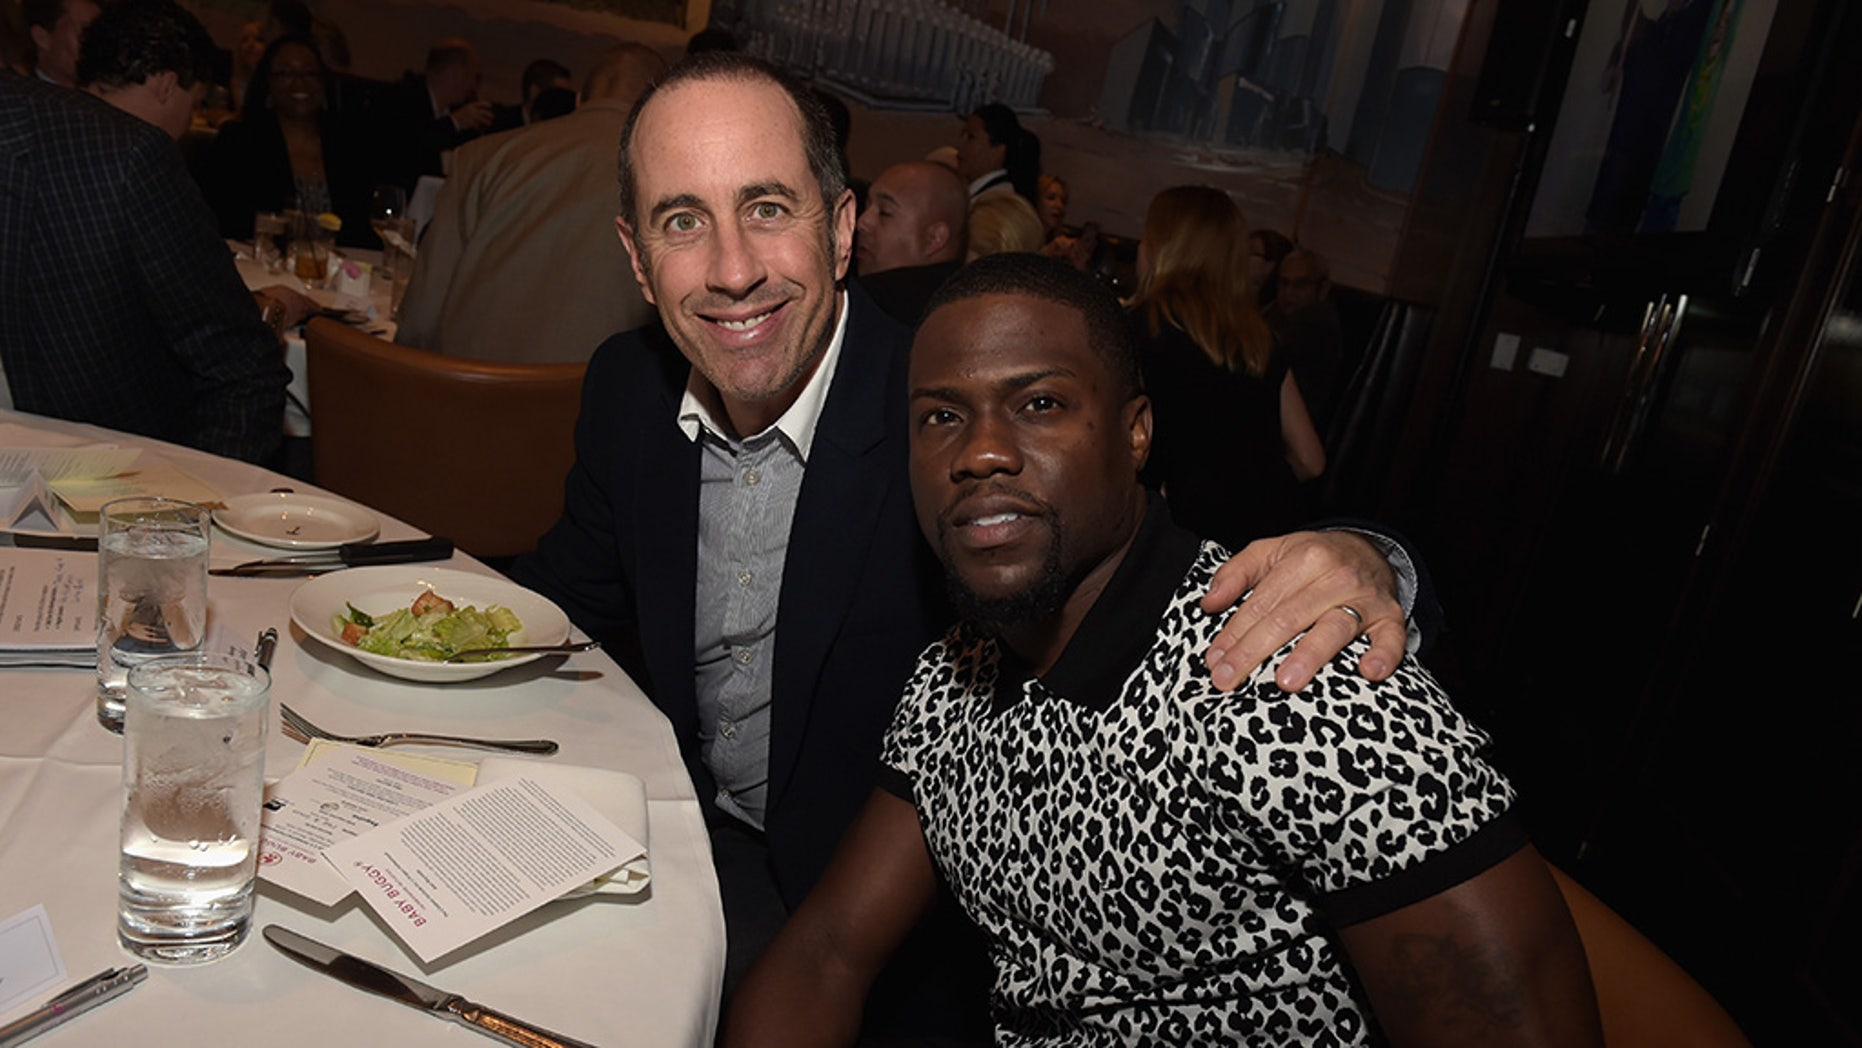 Jerry Seinfeld weighed in on the Kevin Hart Oscar controversy, saying that he thinks the actor will not be